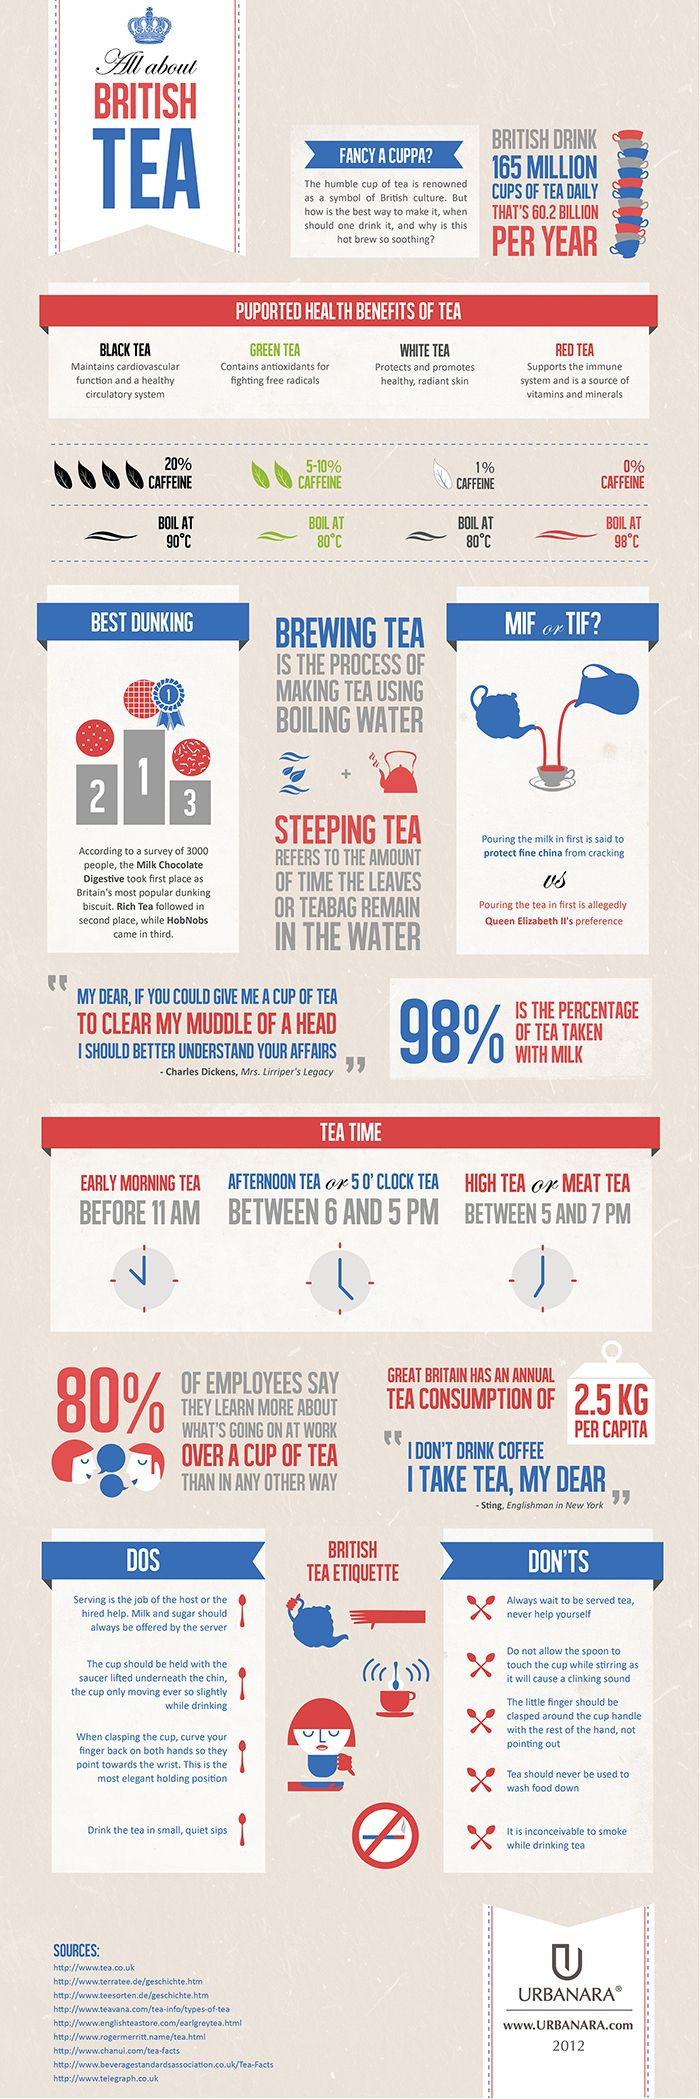 This infographic was created to celebrate British teas. The infographic details how much British tea is consumed yearly, some of purported health bene